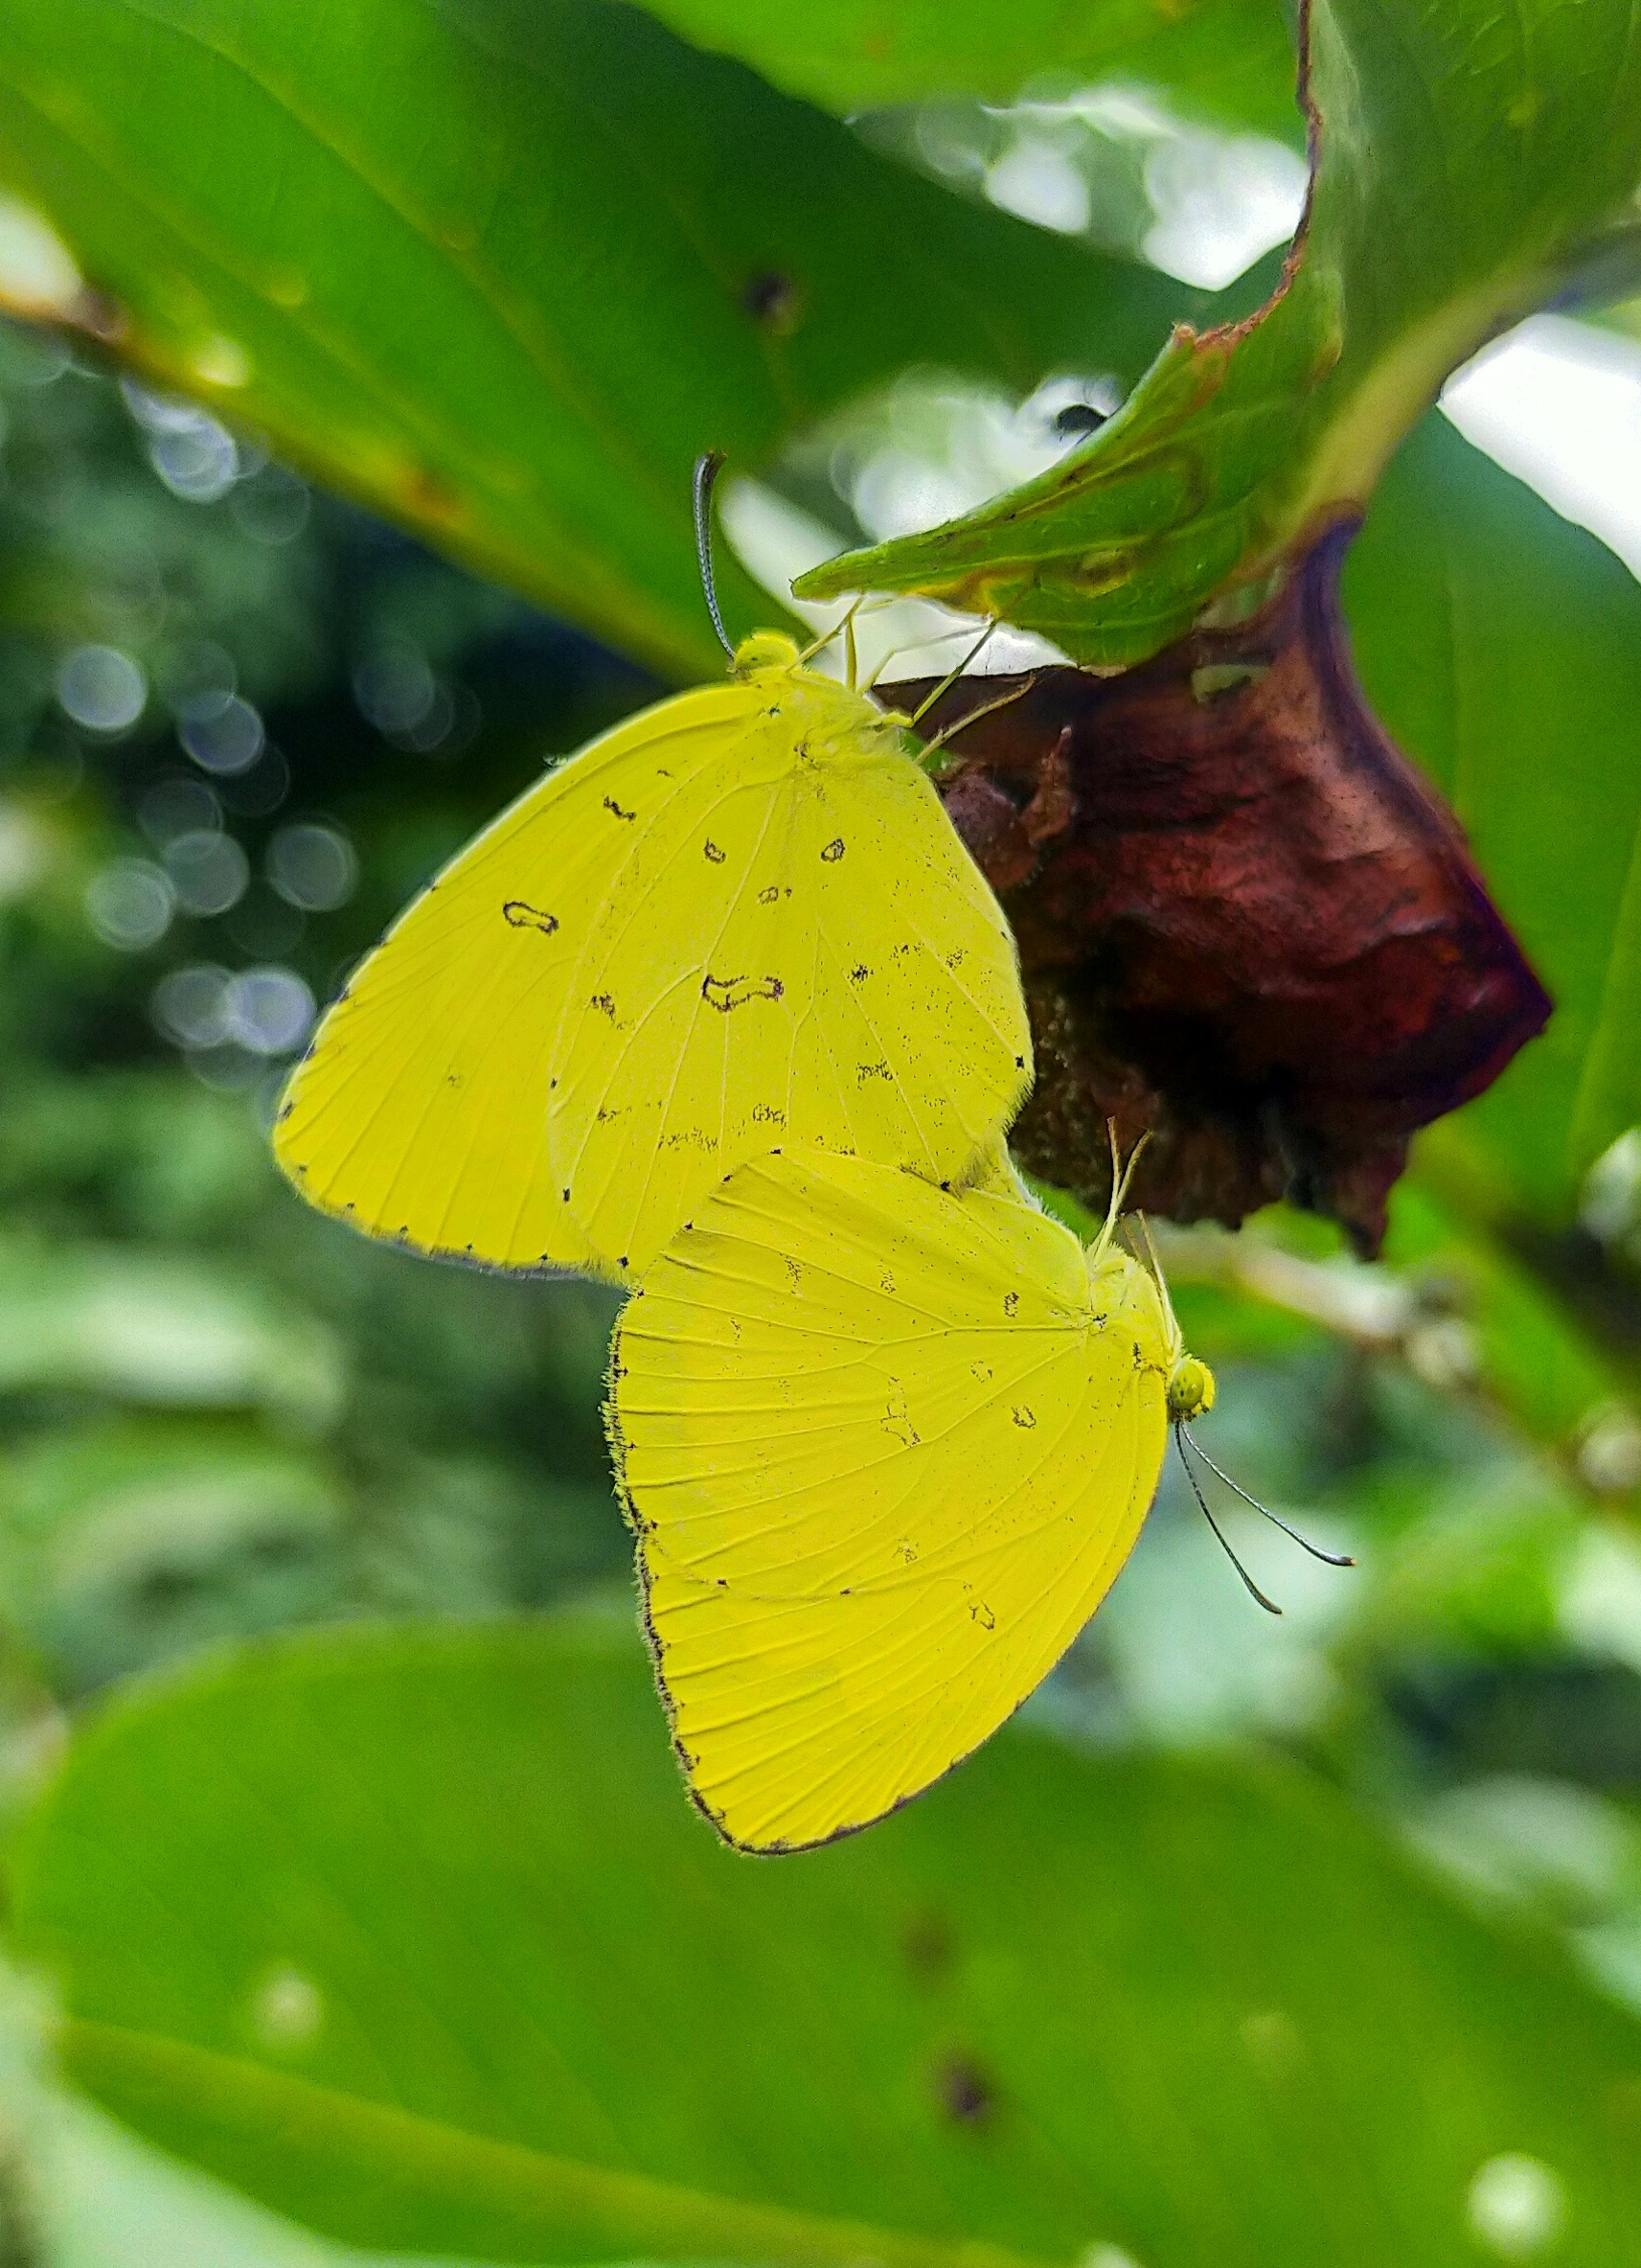 Yellow butterflies on a leaf